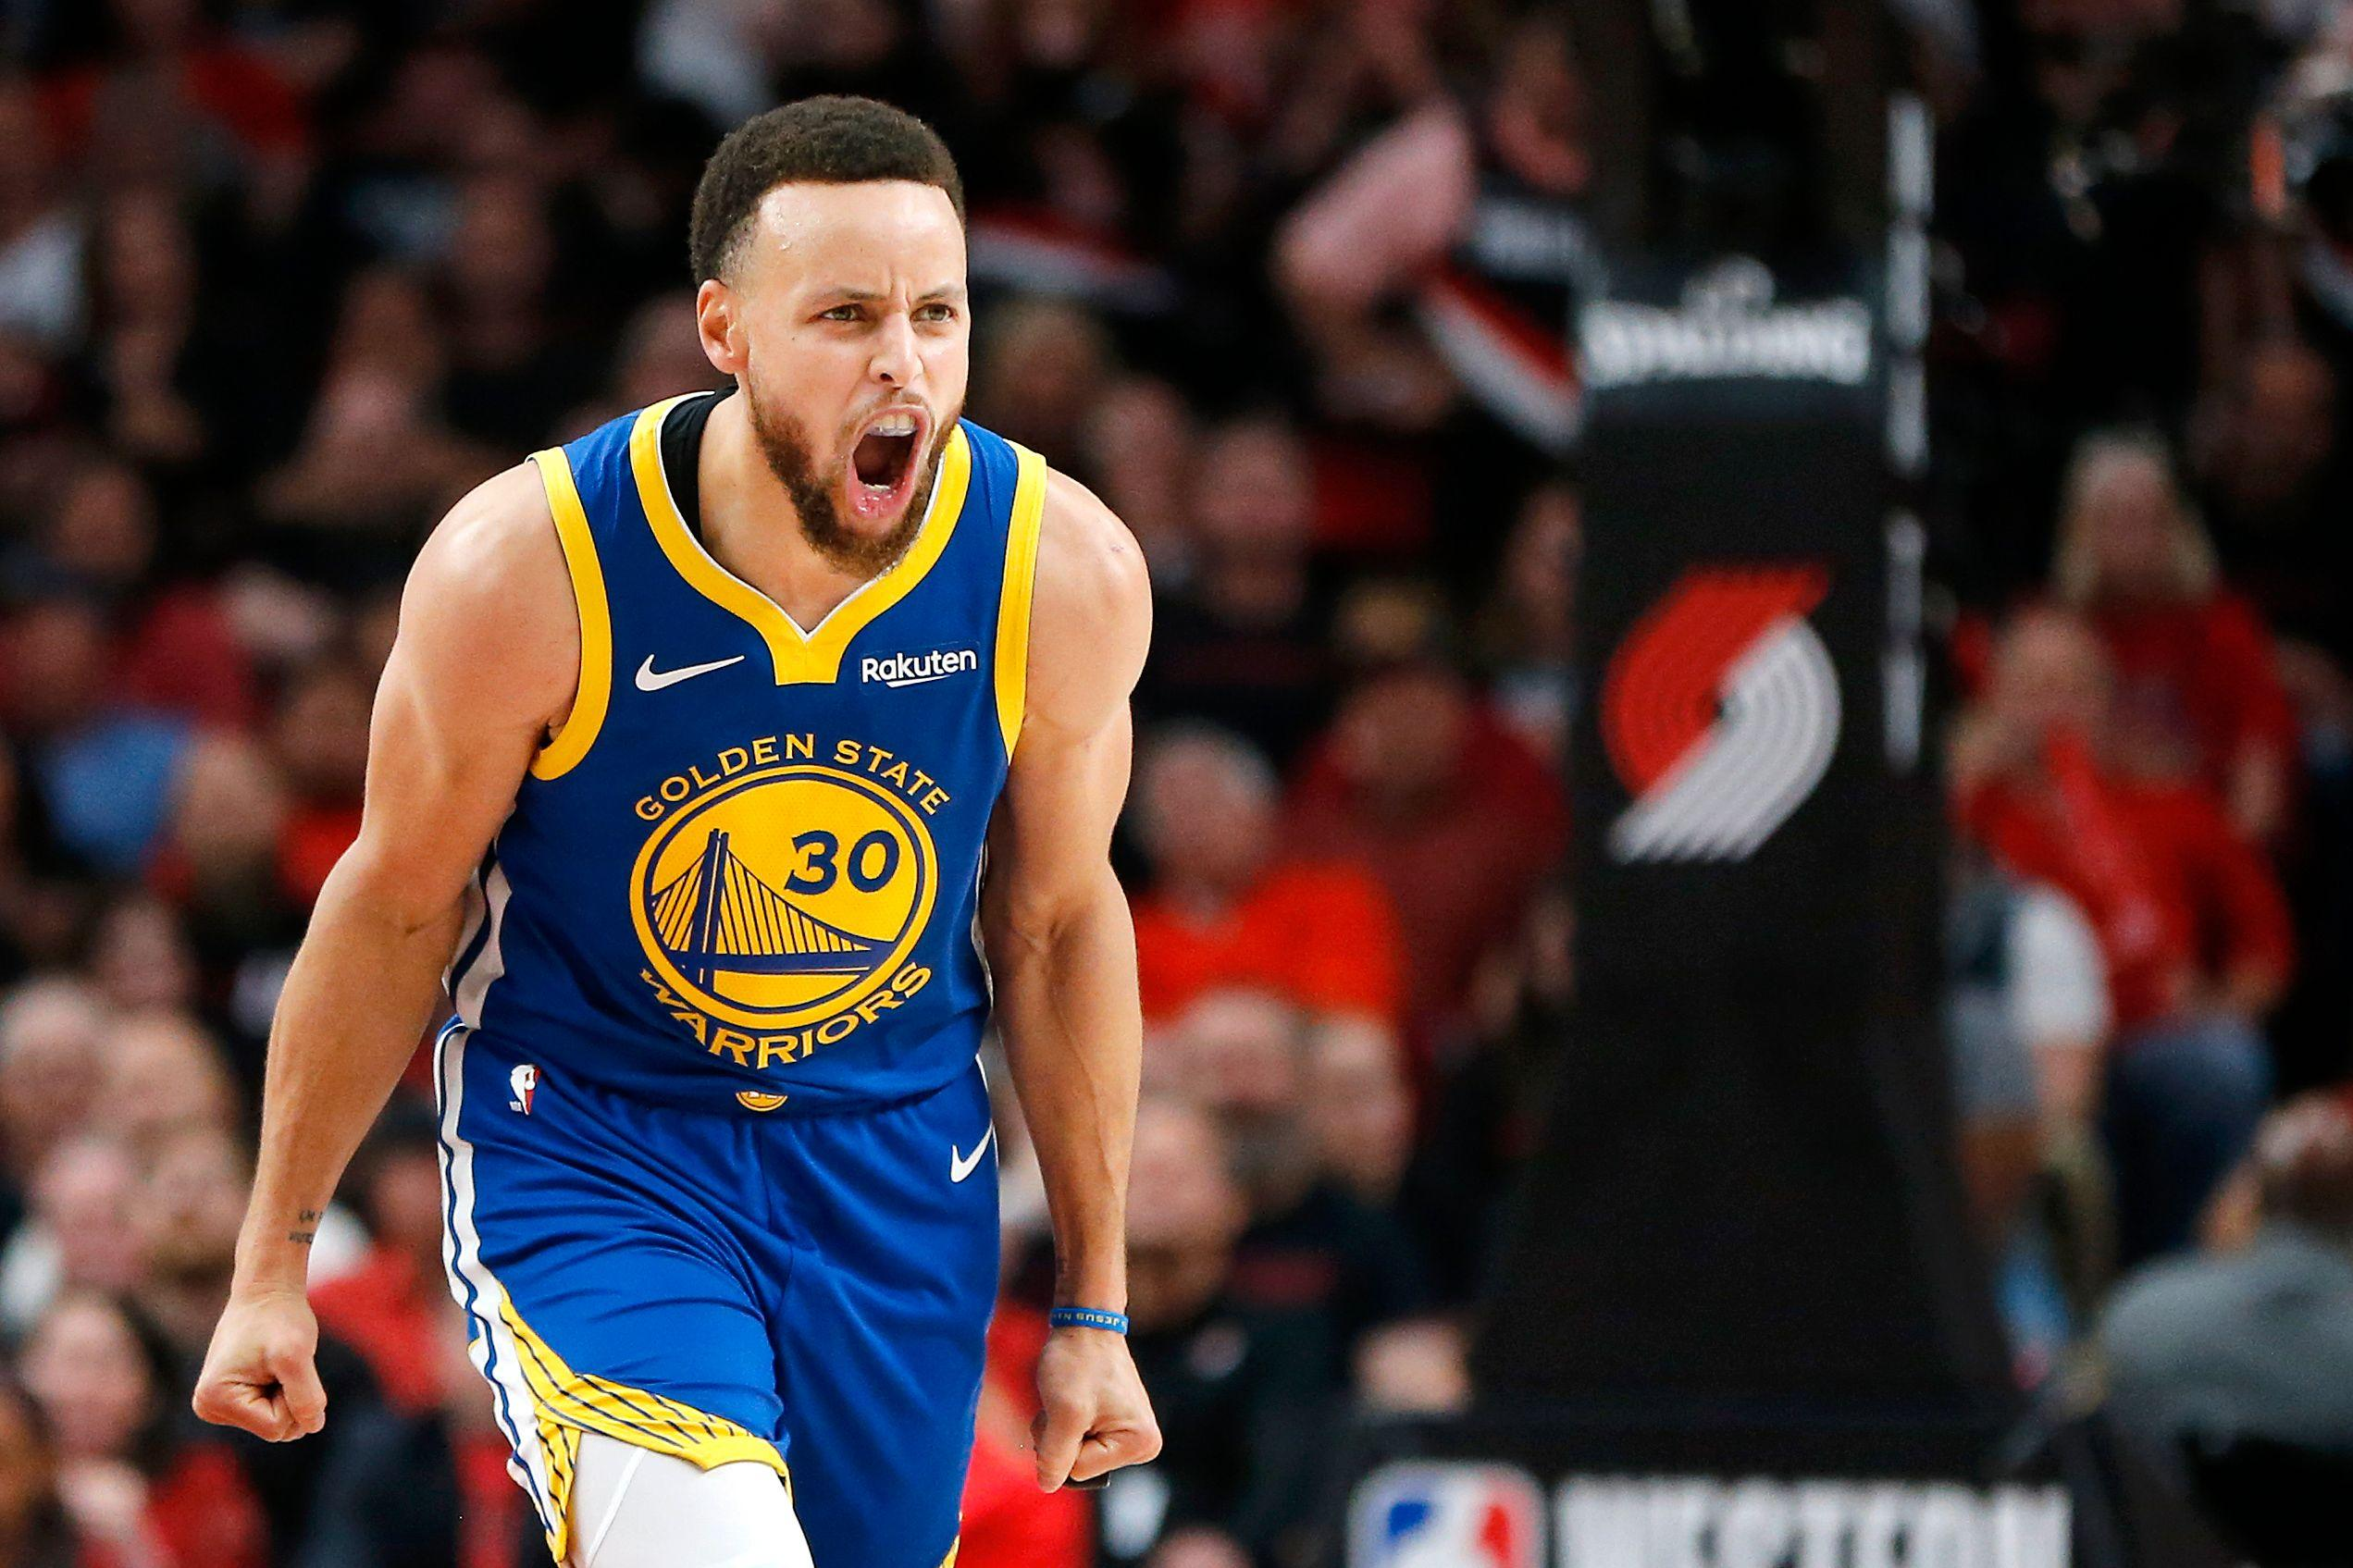 Basketball Porn steph curry alleged nudes swamp social media, would 'violate